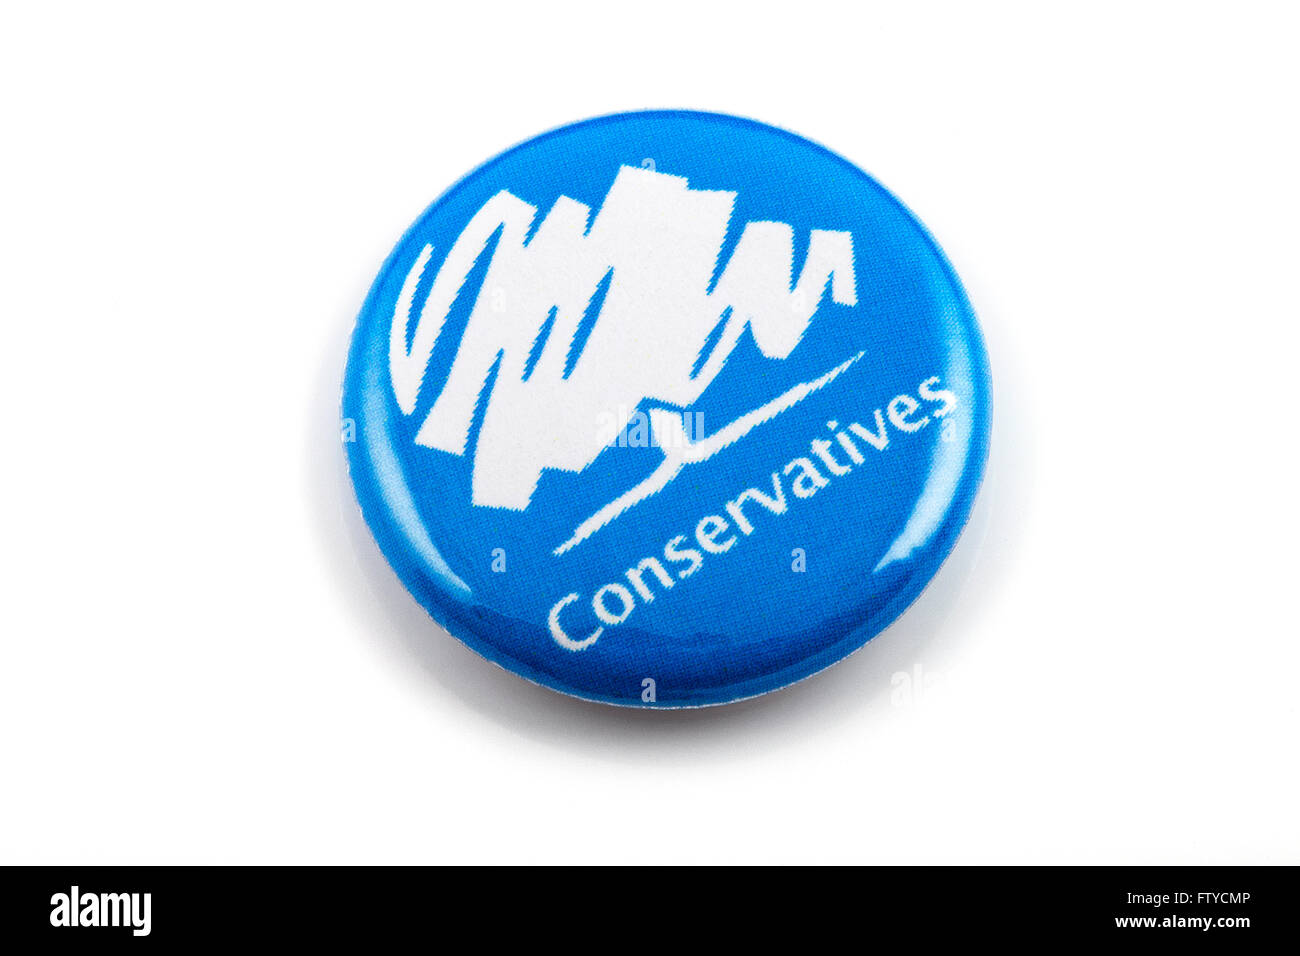 LONDON, UK - MARCH 3RD 2016: A Conservatives (Conservative Party) pin badge over a white background, on 3rd March - Stock Image